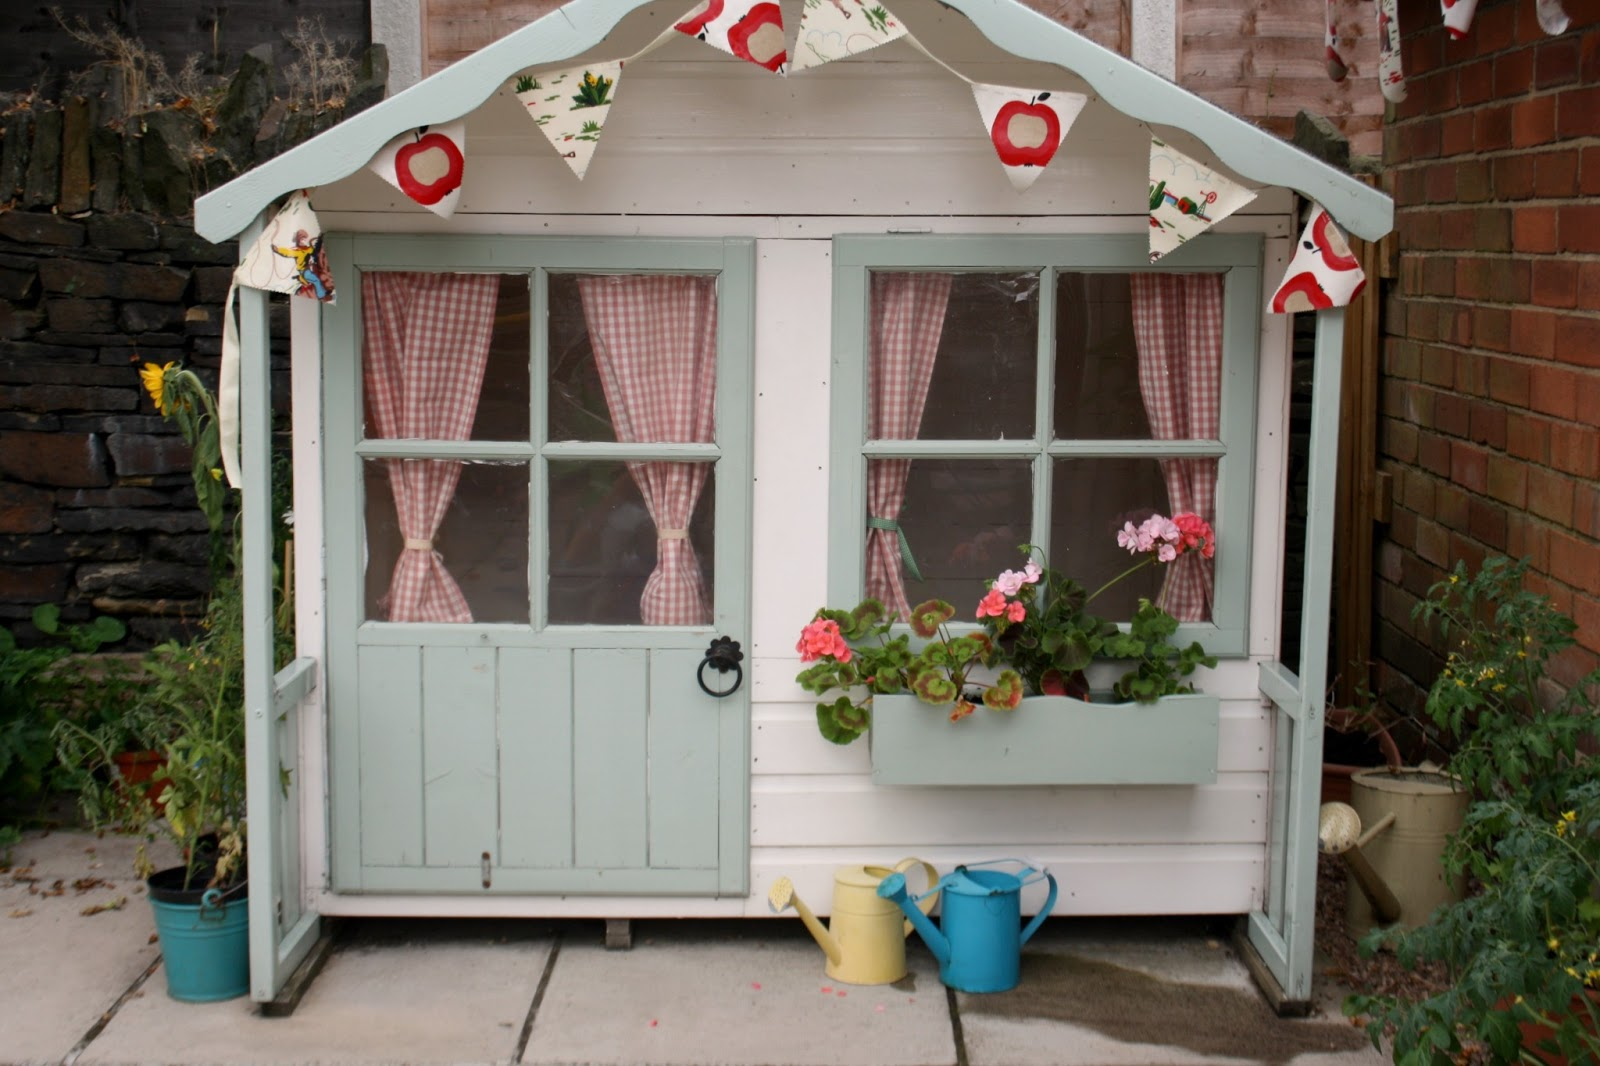 Tales from a happy house a garden playhouse makeover for Wooden wendy house ideas